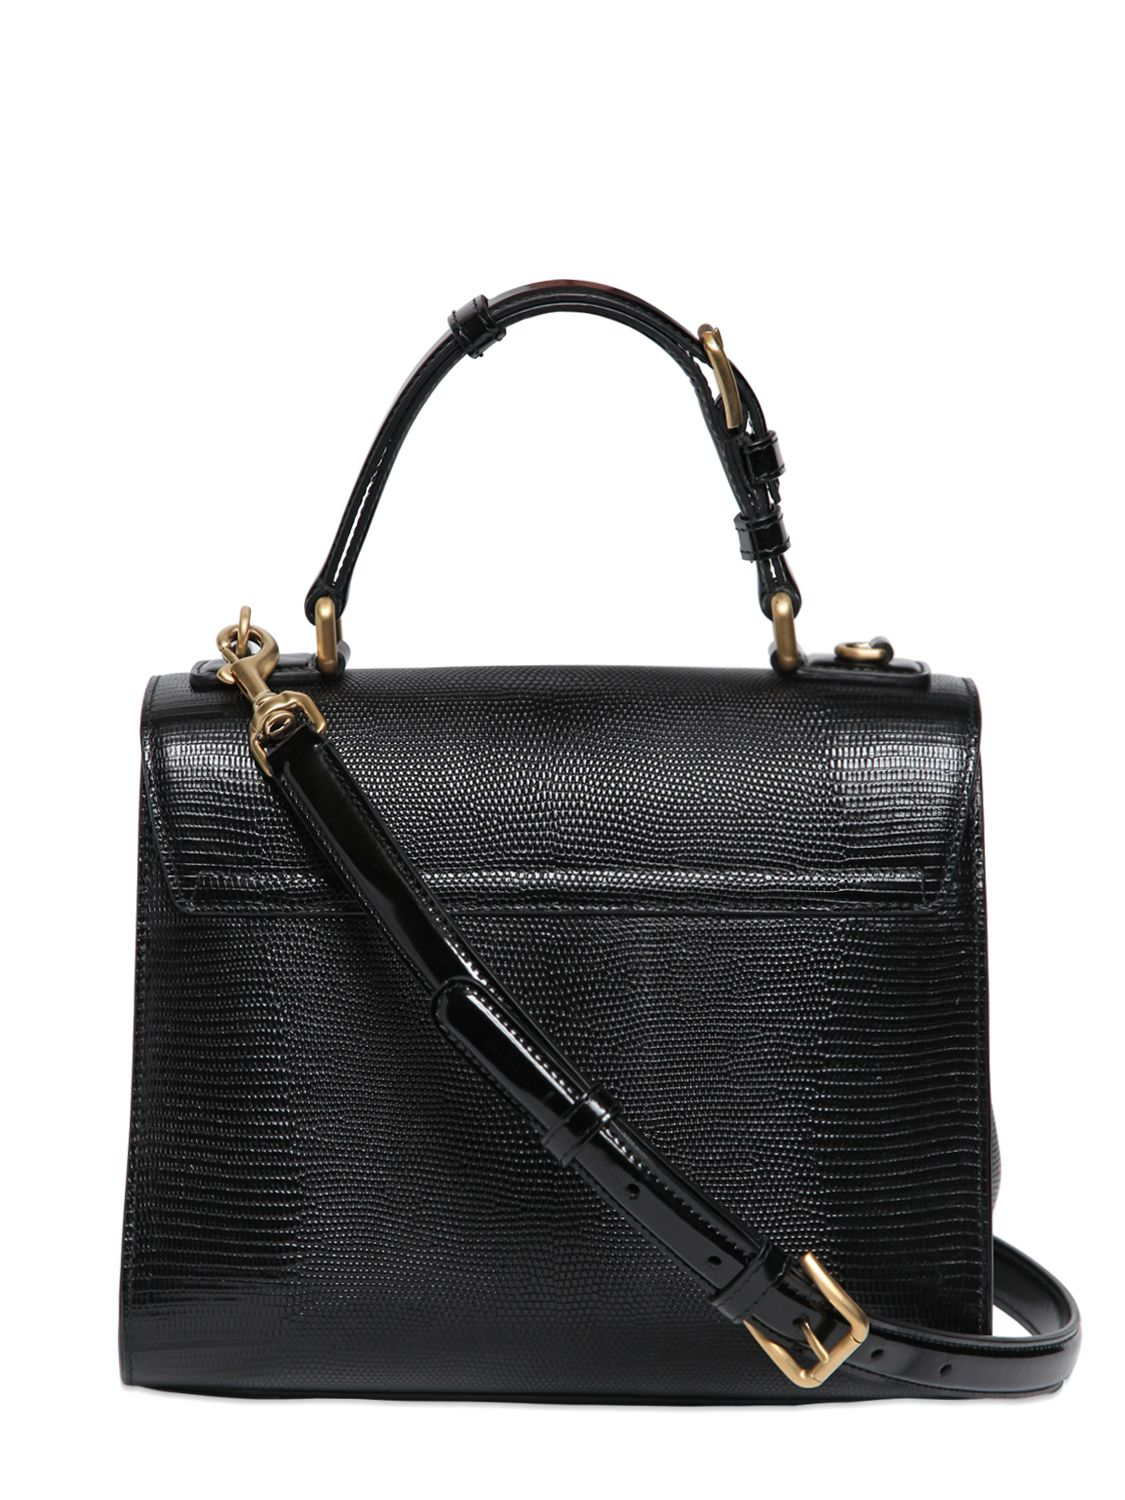 Dolce   Gabbana Monica Iguana Embossed Leather Bag in Black - Lyst c8a1d513f30be